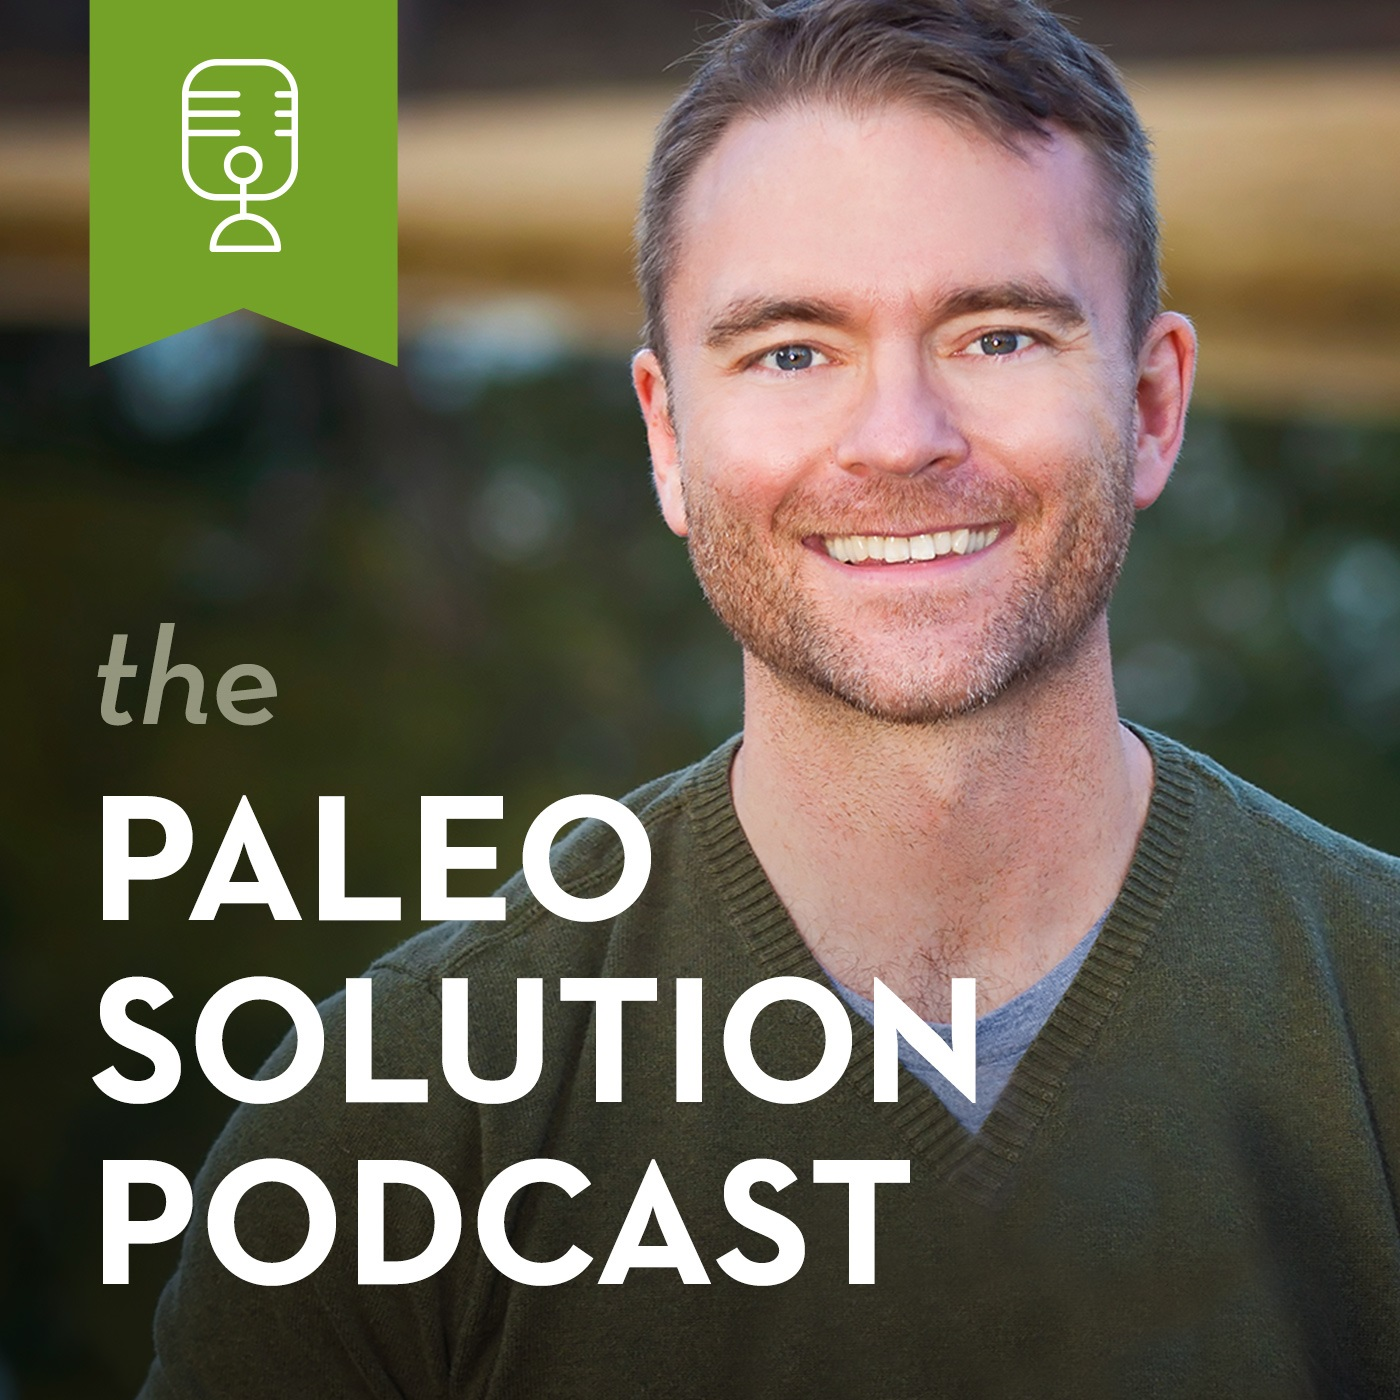 Robb Wolf - The Paleo Solution Podcast - Paleo diet, nutrition, fitness, and health show art